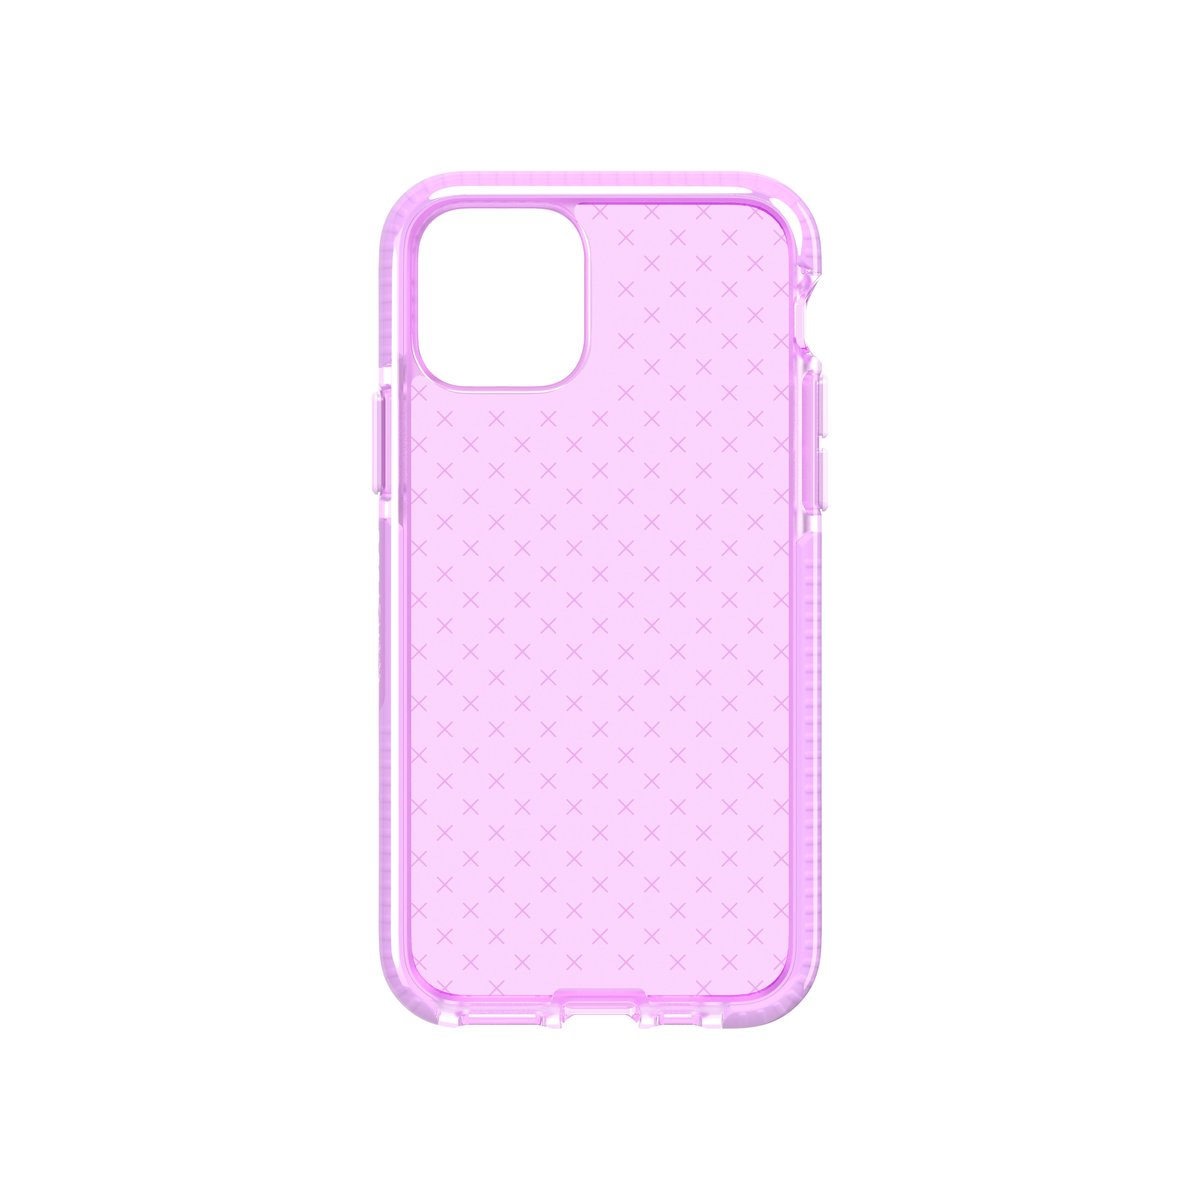 Evo Check for iPhone 11 - Orchid